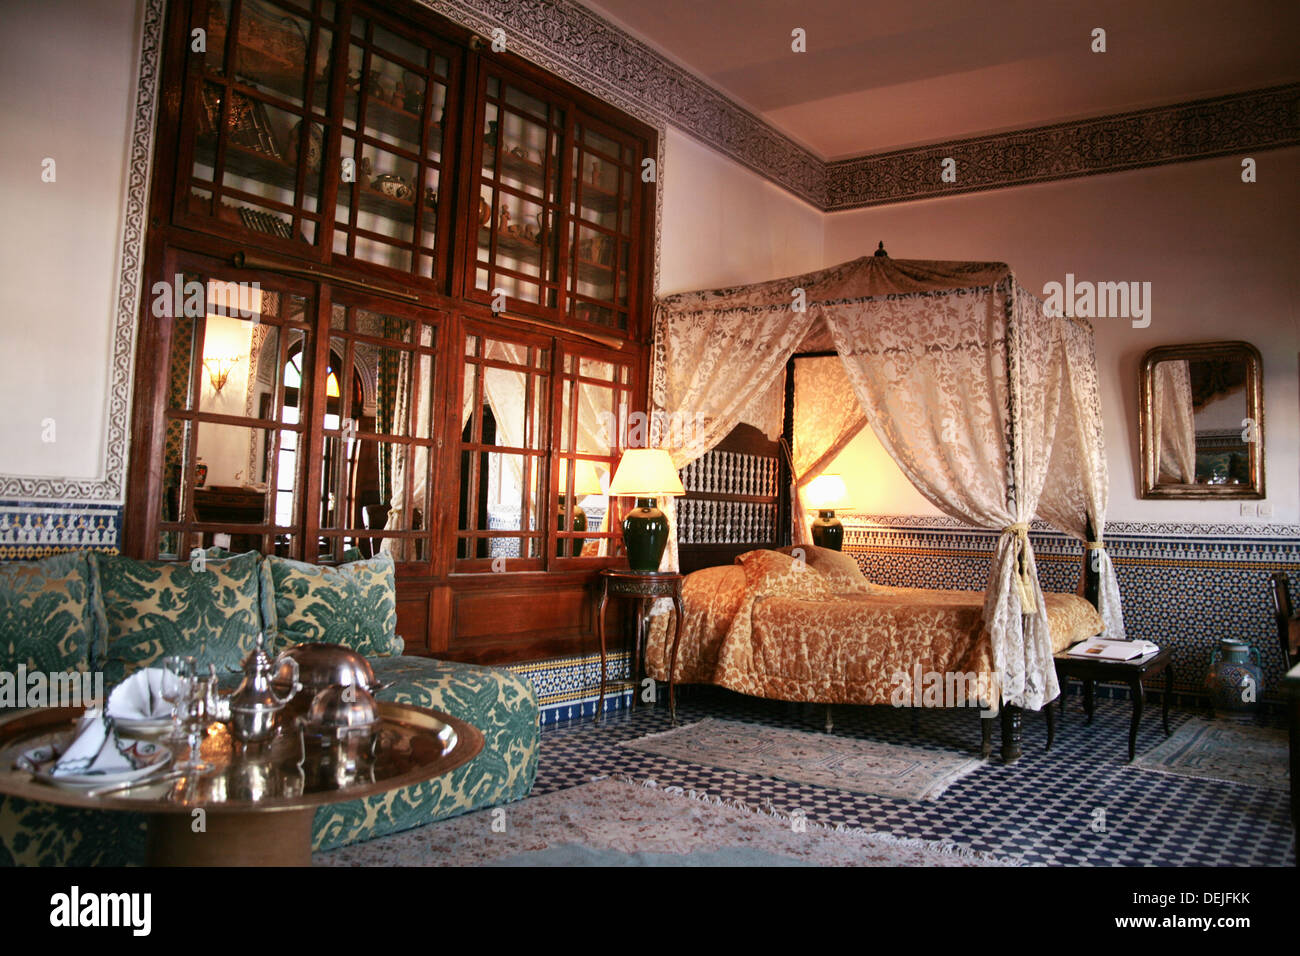 riad la maison bleue at fes morocco stock photo royalty free image 60643735 alamy. Black Bedroom Furniture Sets. Home Design Ideas